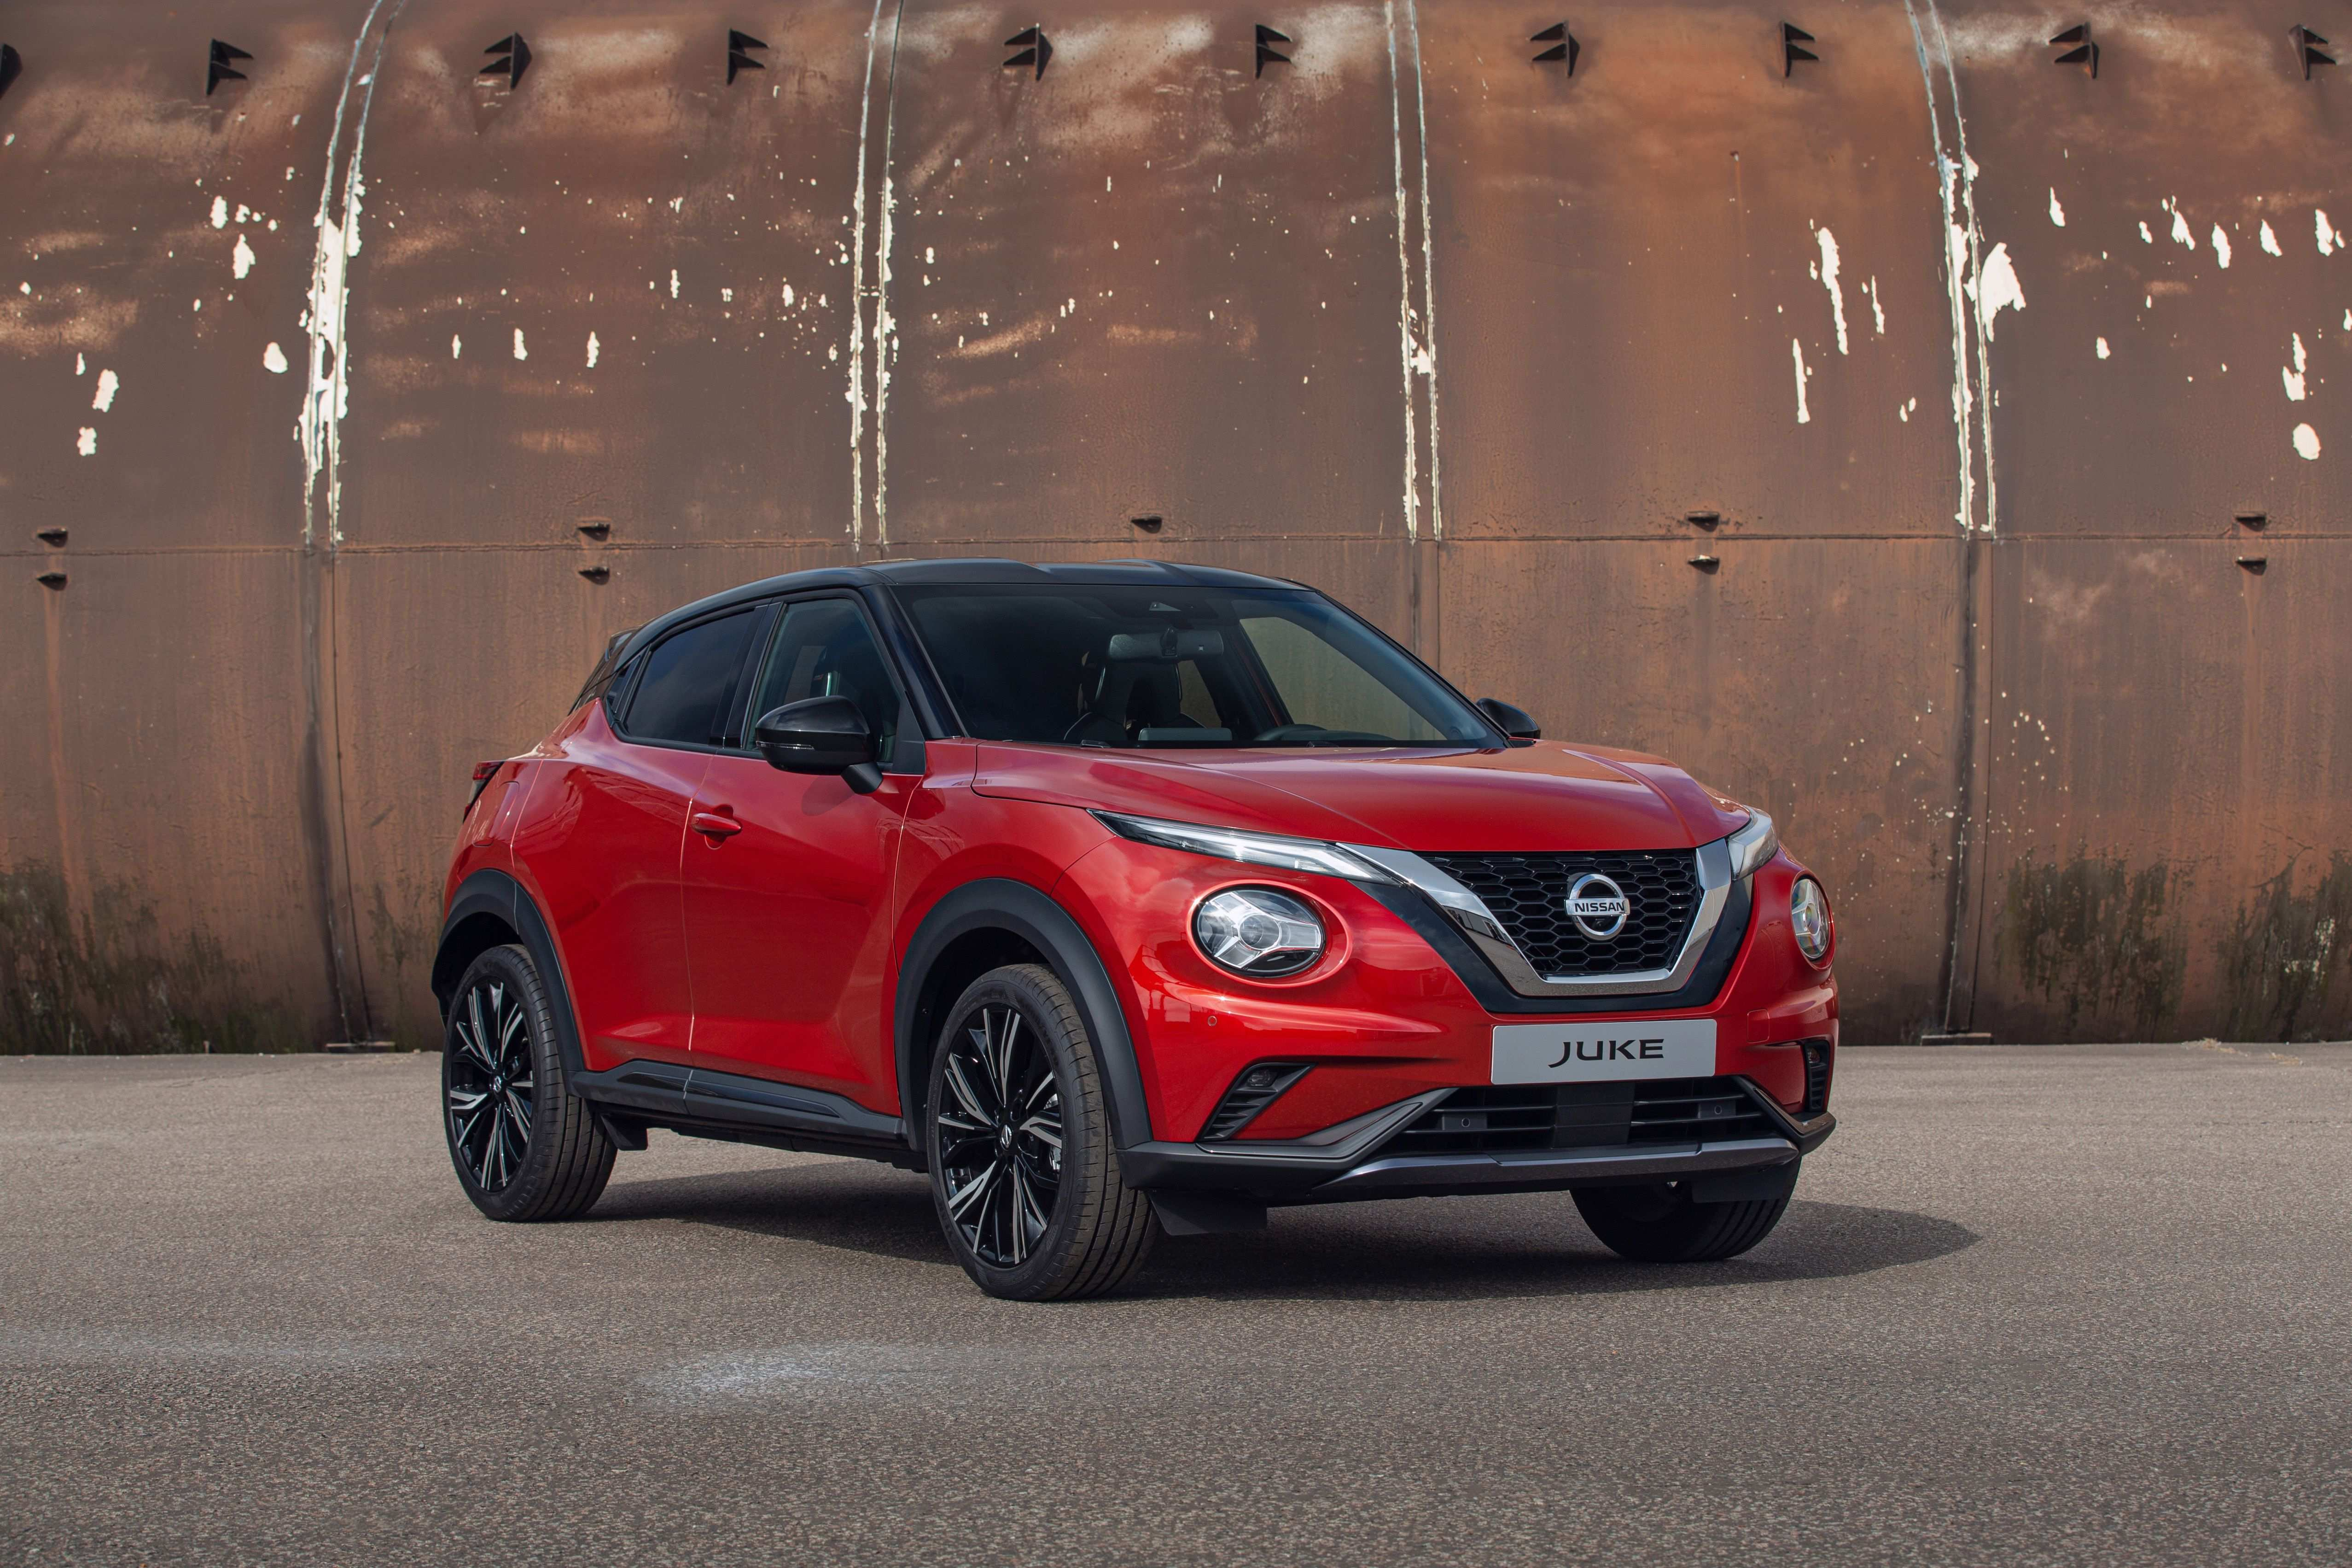 42 All New Nissan Juke 2020 Dimensions Review And Release Date